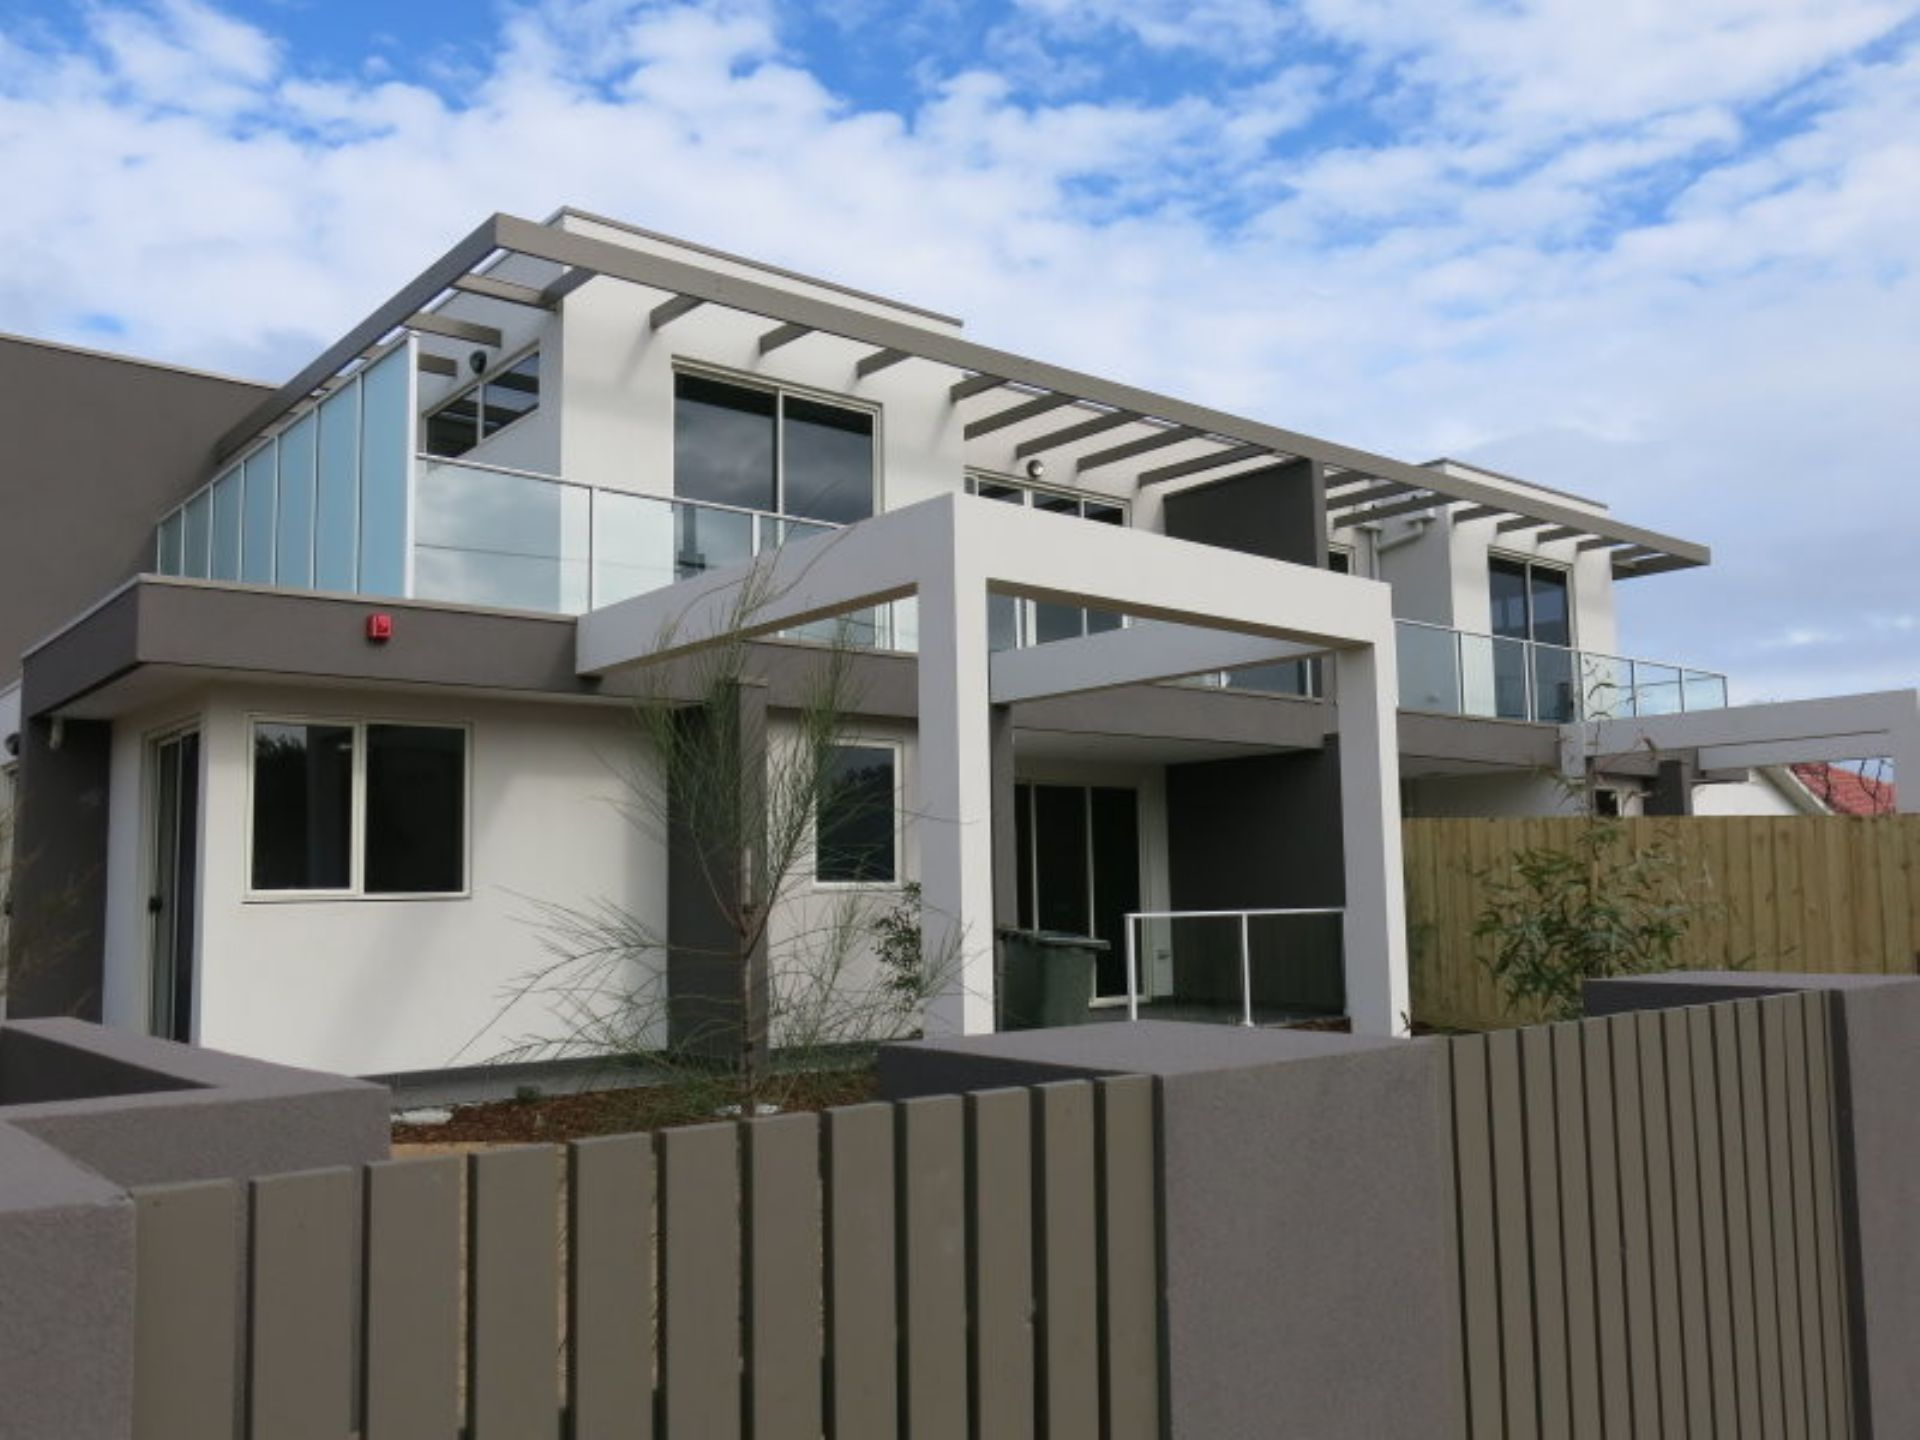 12/8-10 Maury Road, CHELSEA, VIC, 3196 - Image